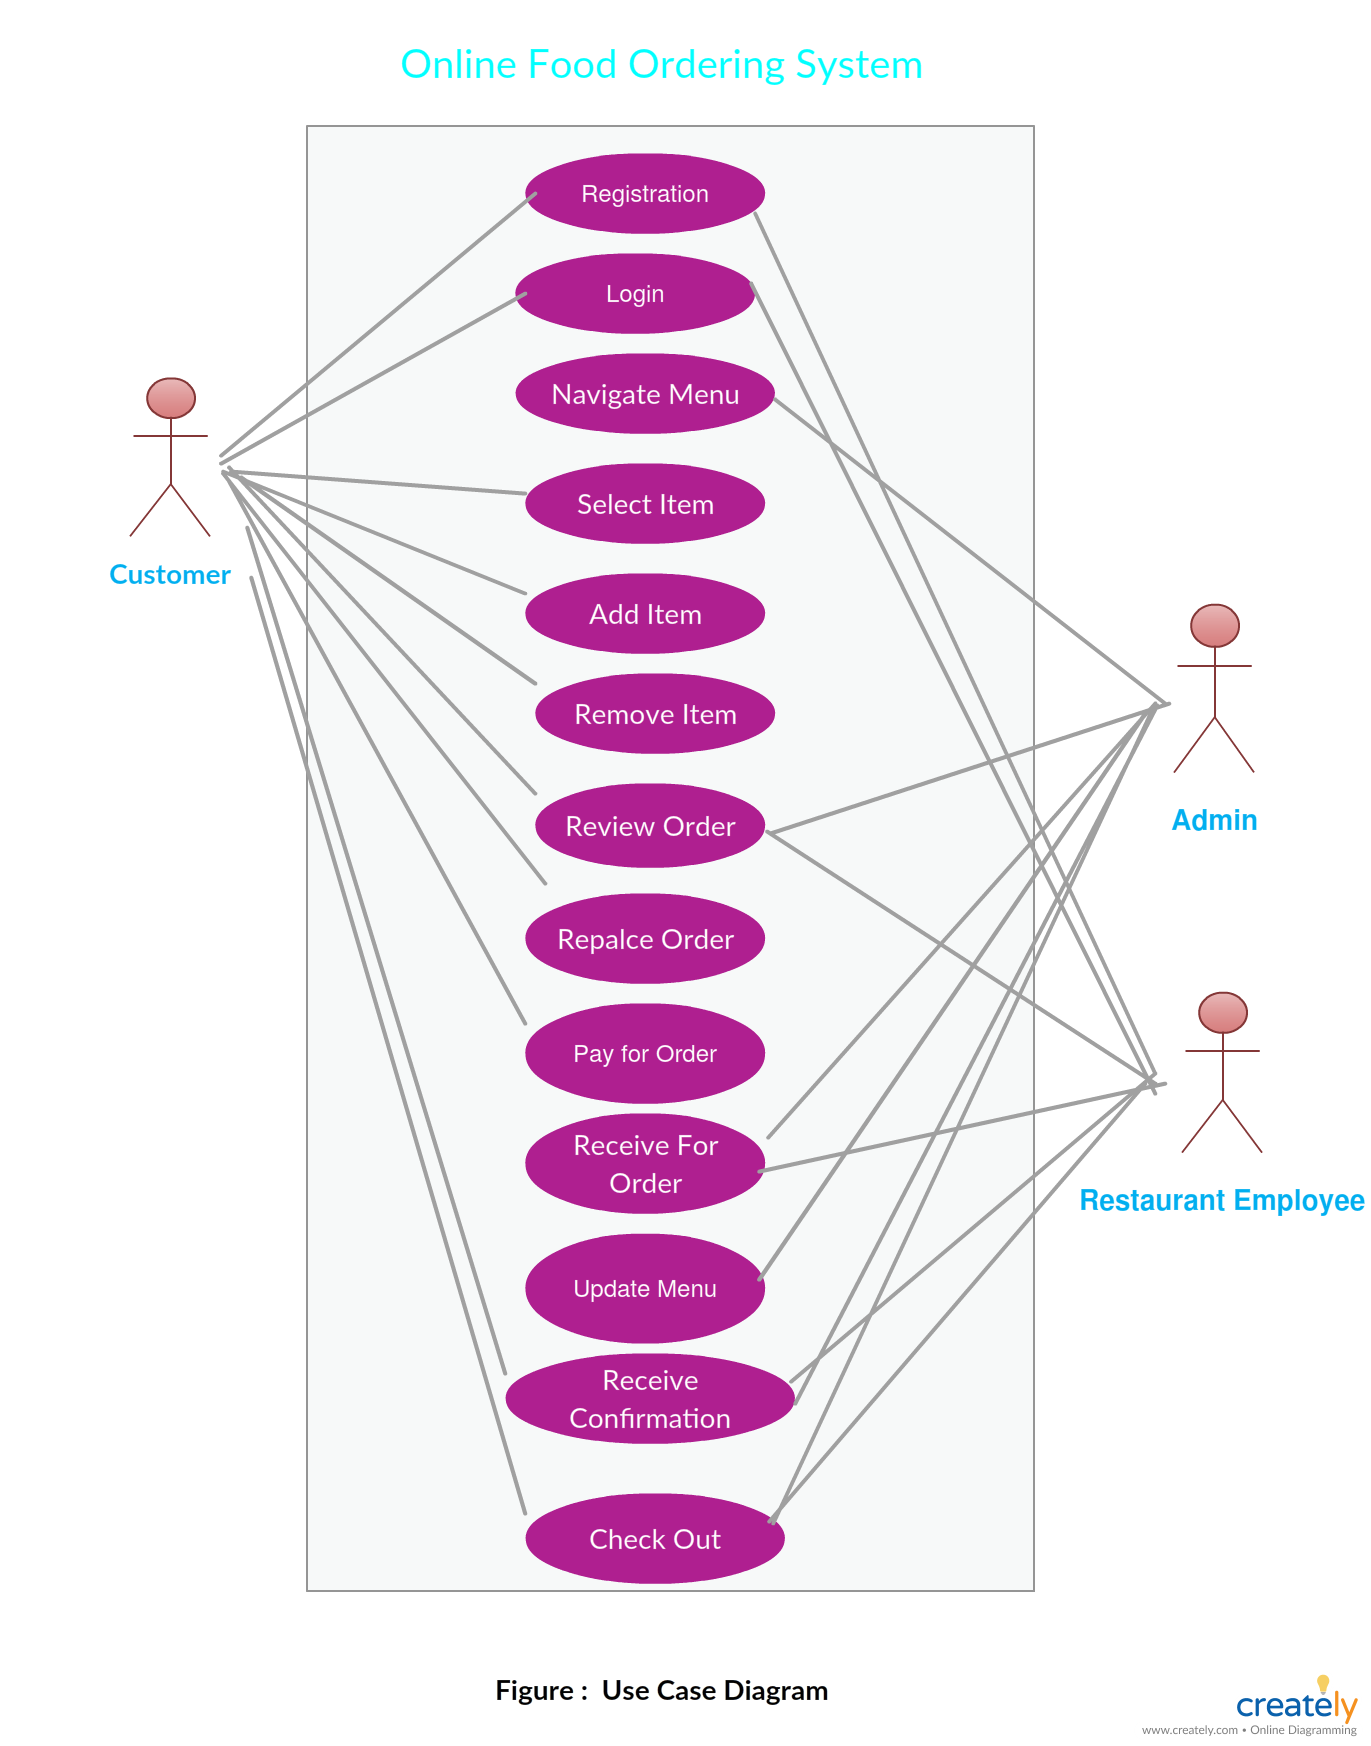 medium resolution of er diagram for online food ordering system a entity relationship diagram showing food ordering system ideal for restaurant chains who delivery food